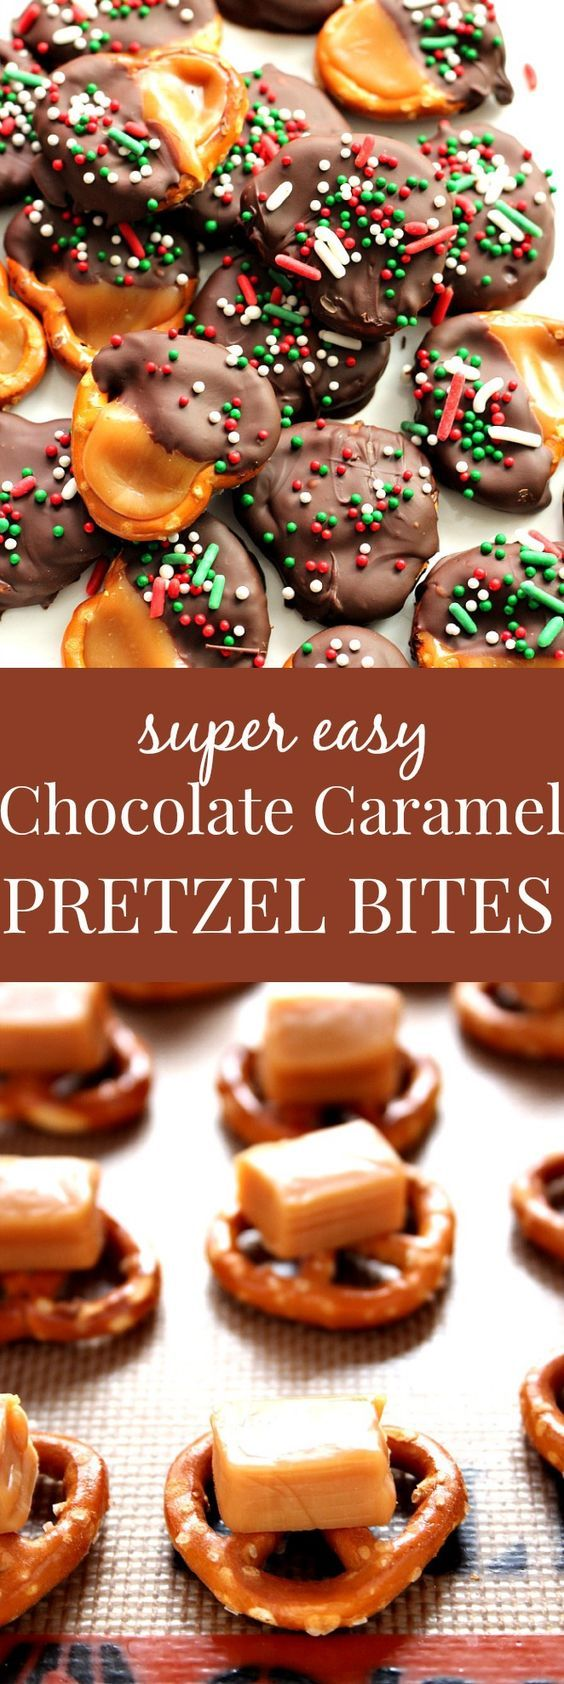 Easy Chocolate Caramel Pretzel Bites Recipe